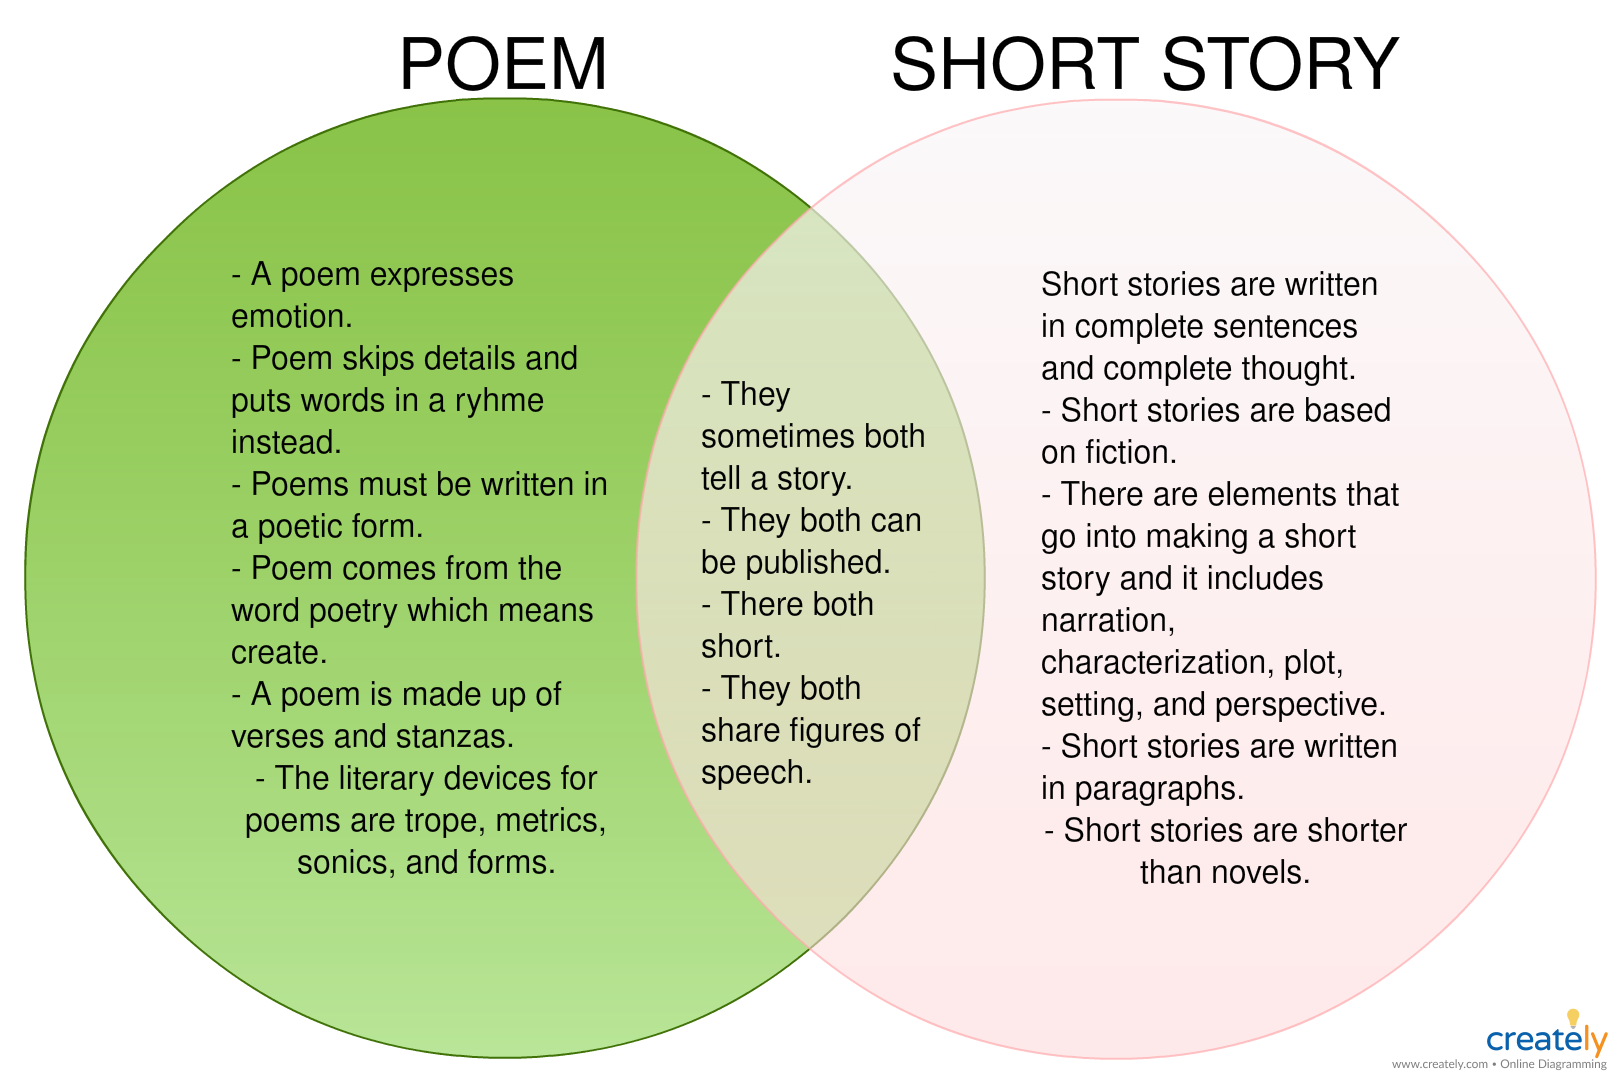 poem vs short story venn diagram similarities and differences between short story and poem you can edit this template and create your own diagram  [ 1621 x 1080 Pixel ]